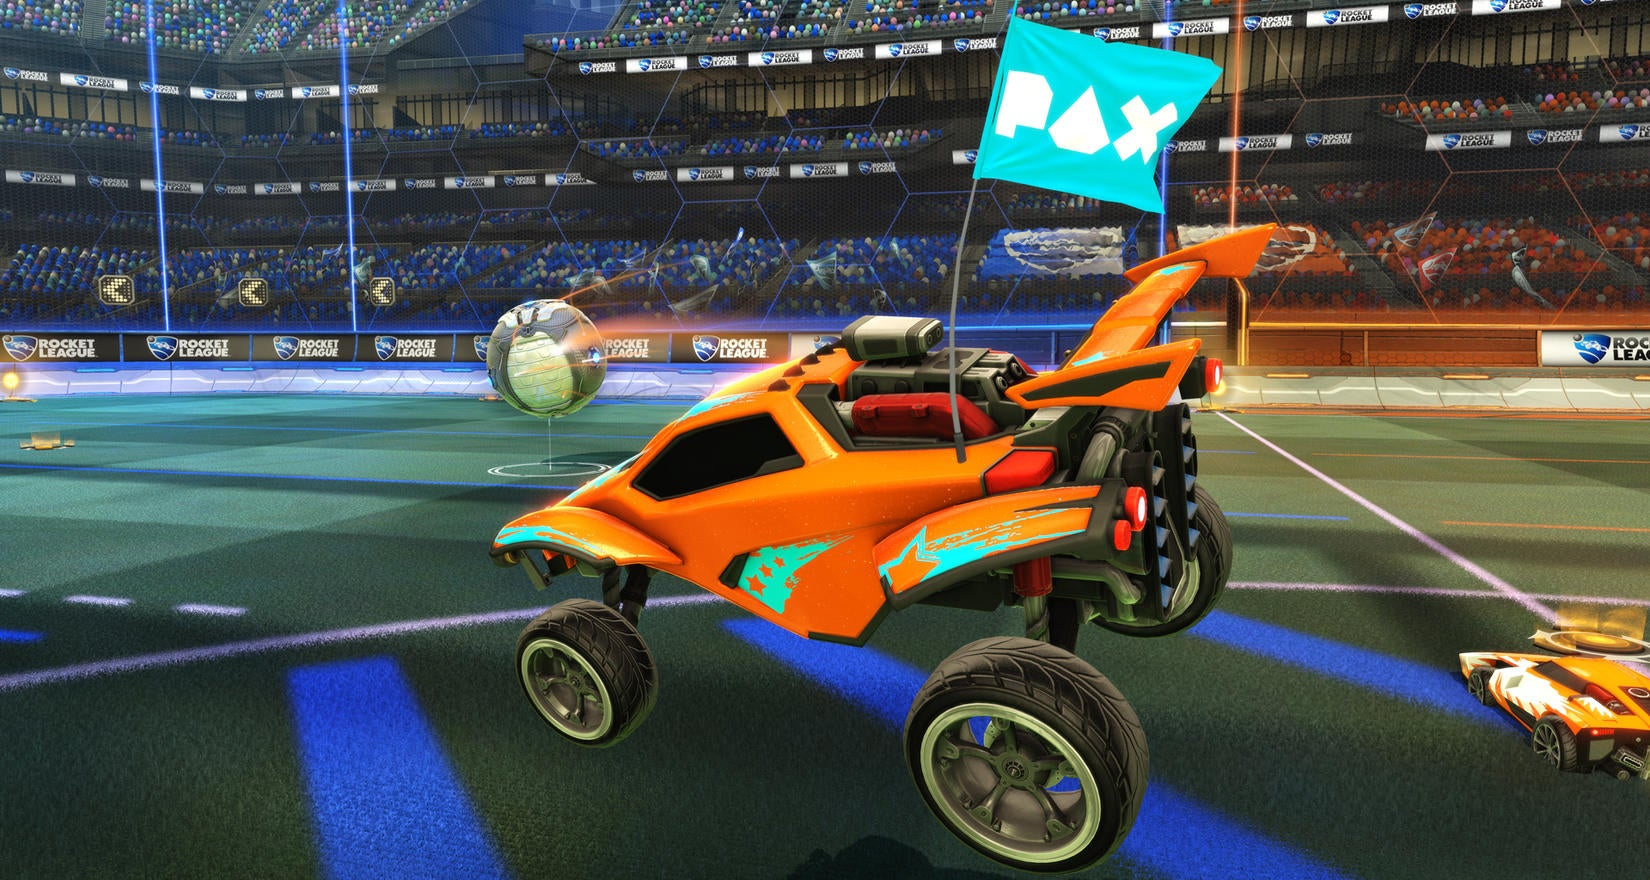 Rocket League at PAX East 2018 Image